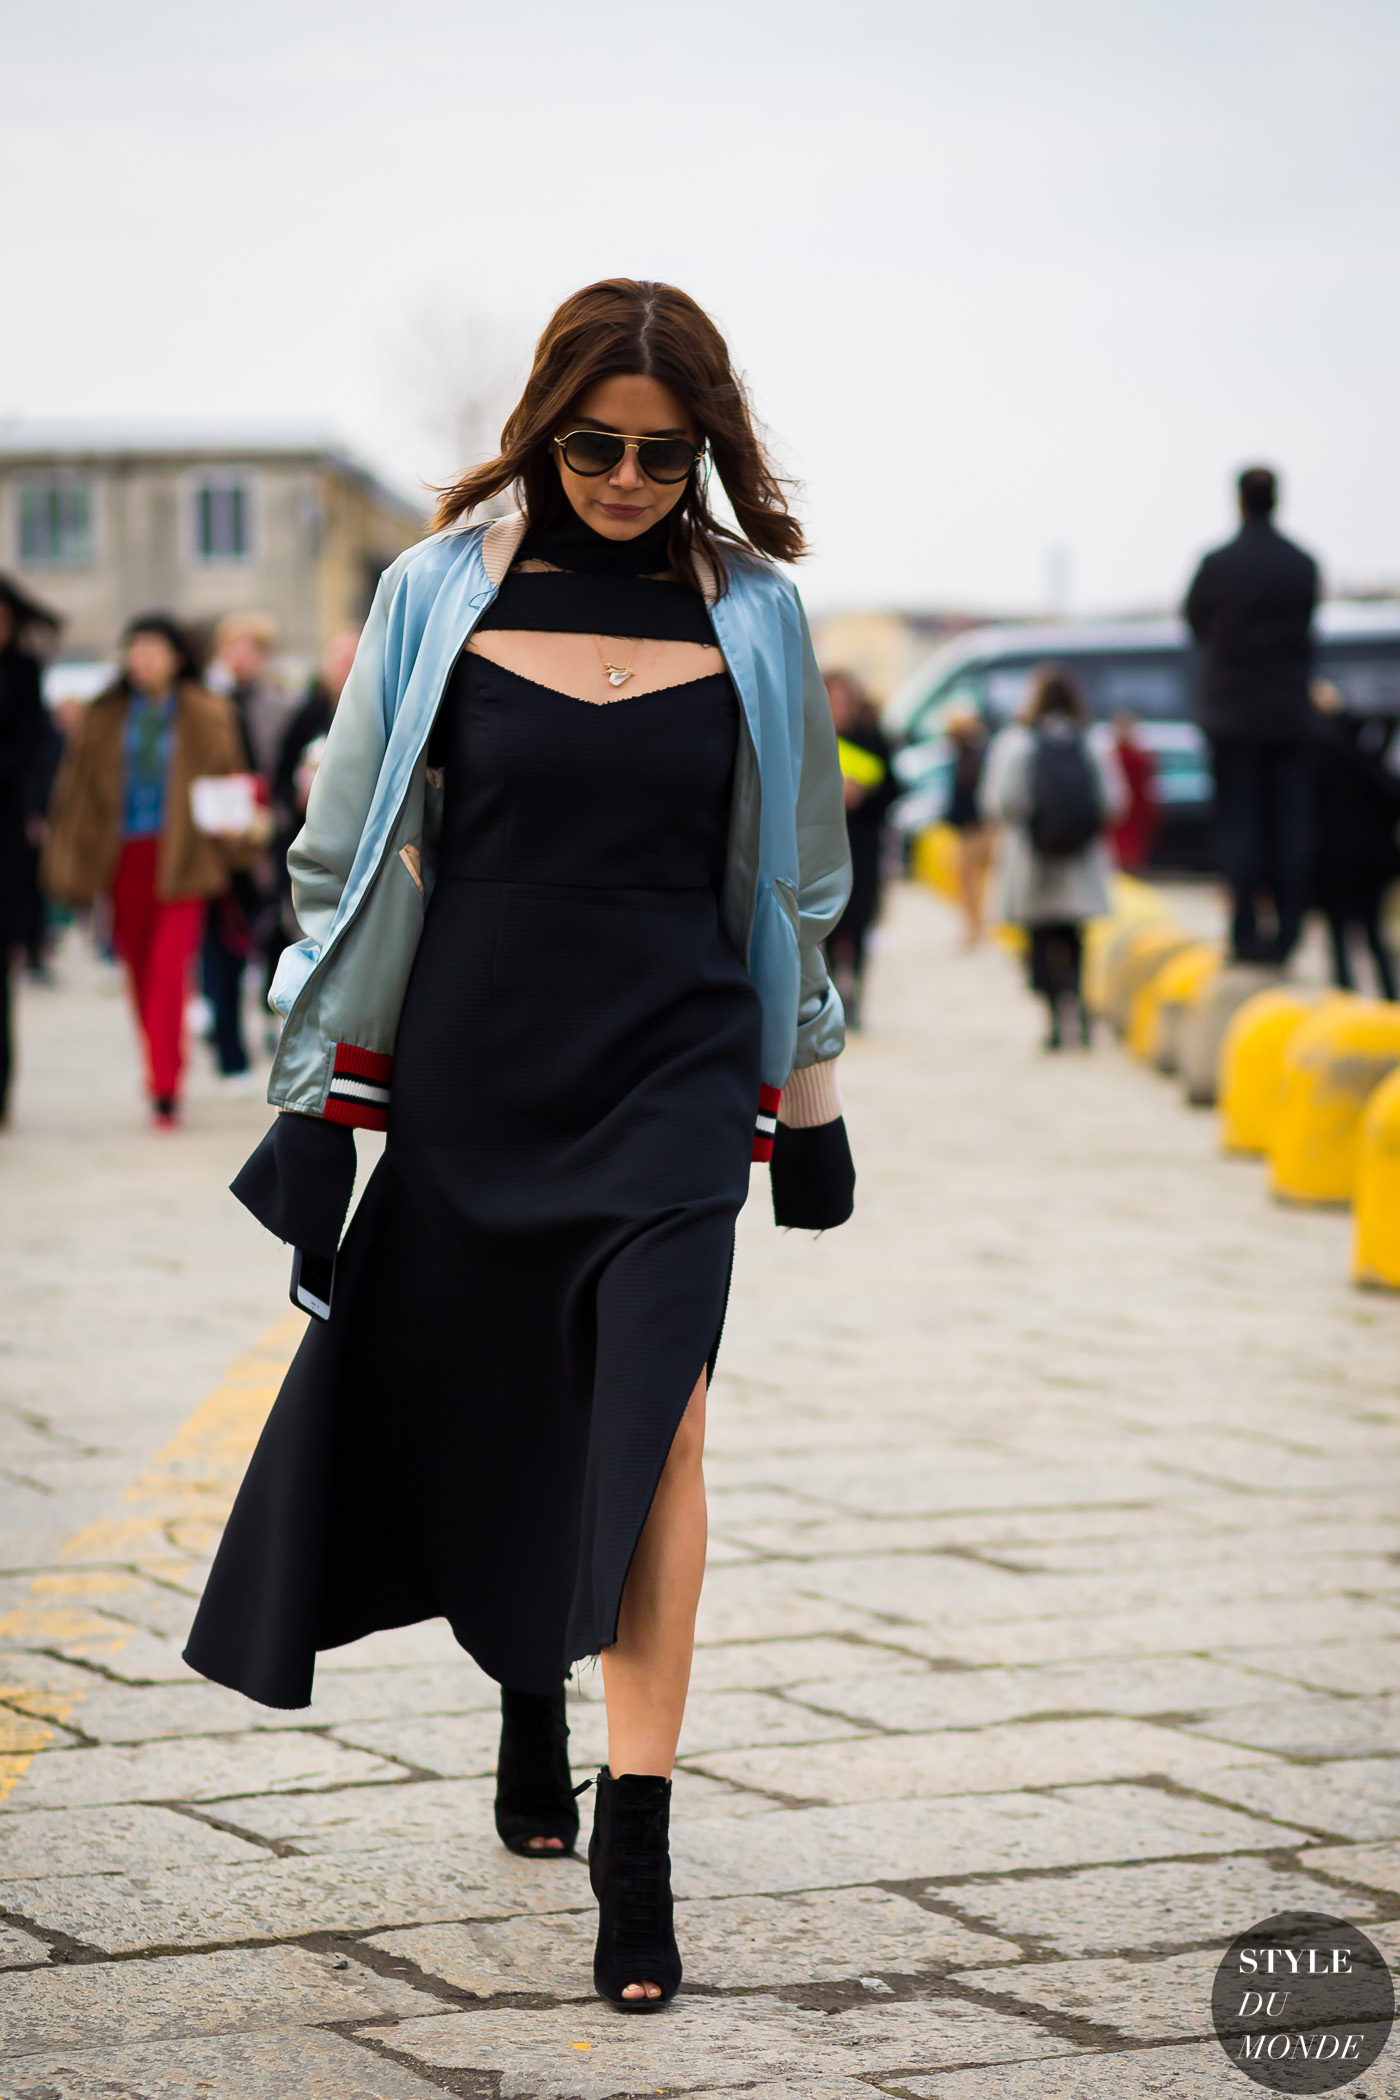 Christine Centenera Street Style Street Fashion Streetsnaps by STYLEDUMONDE Street Style Fashion Photography